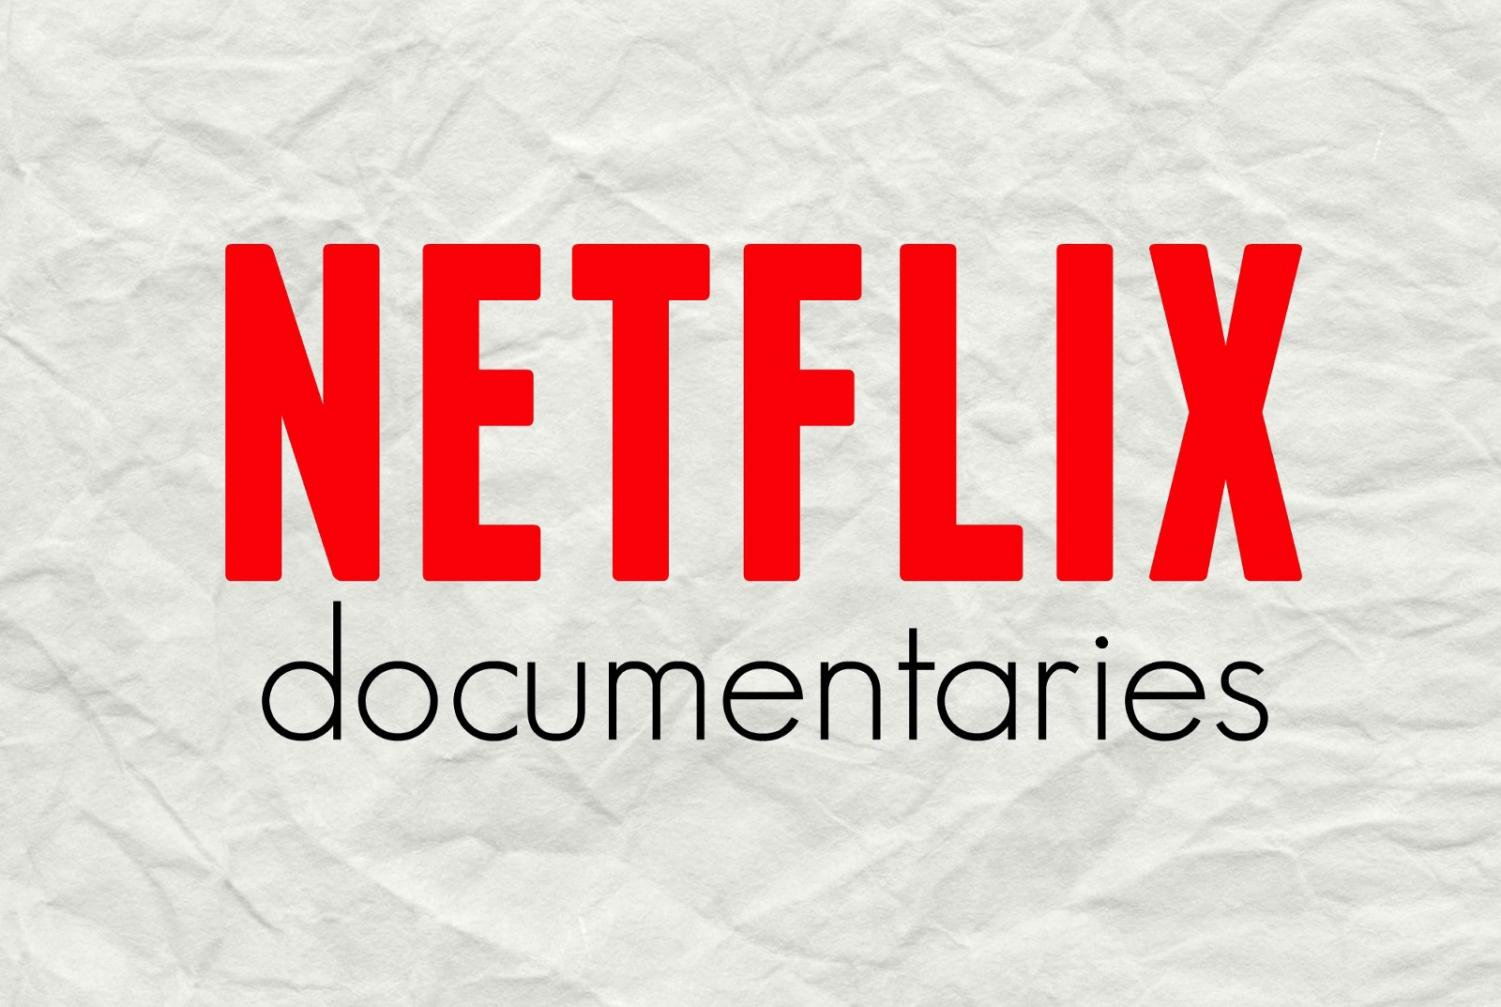 While many teens go to streaming sites like Hulu or Netflix for comedies, dramas, and thrillers, too often they overlook documentaries.